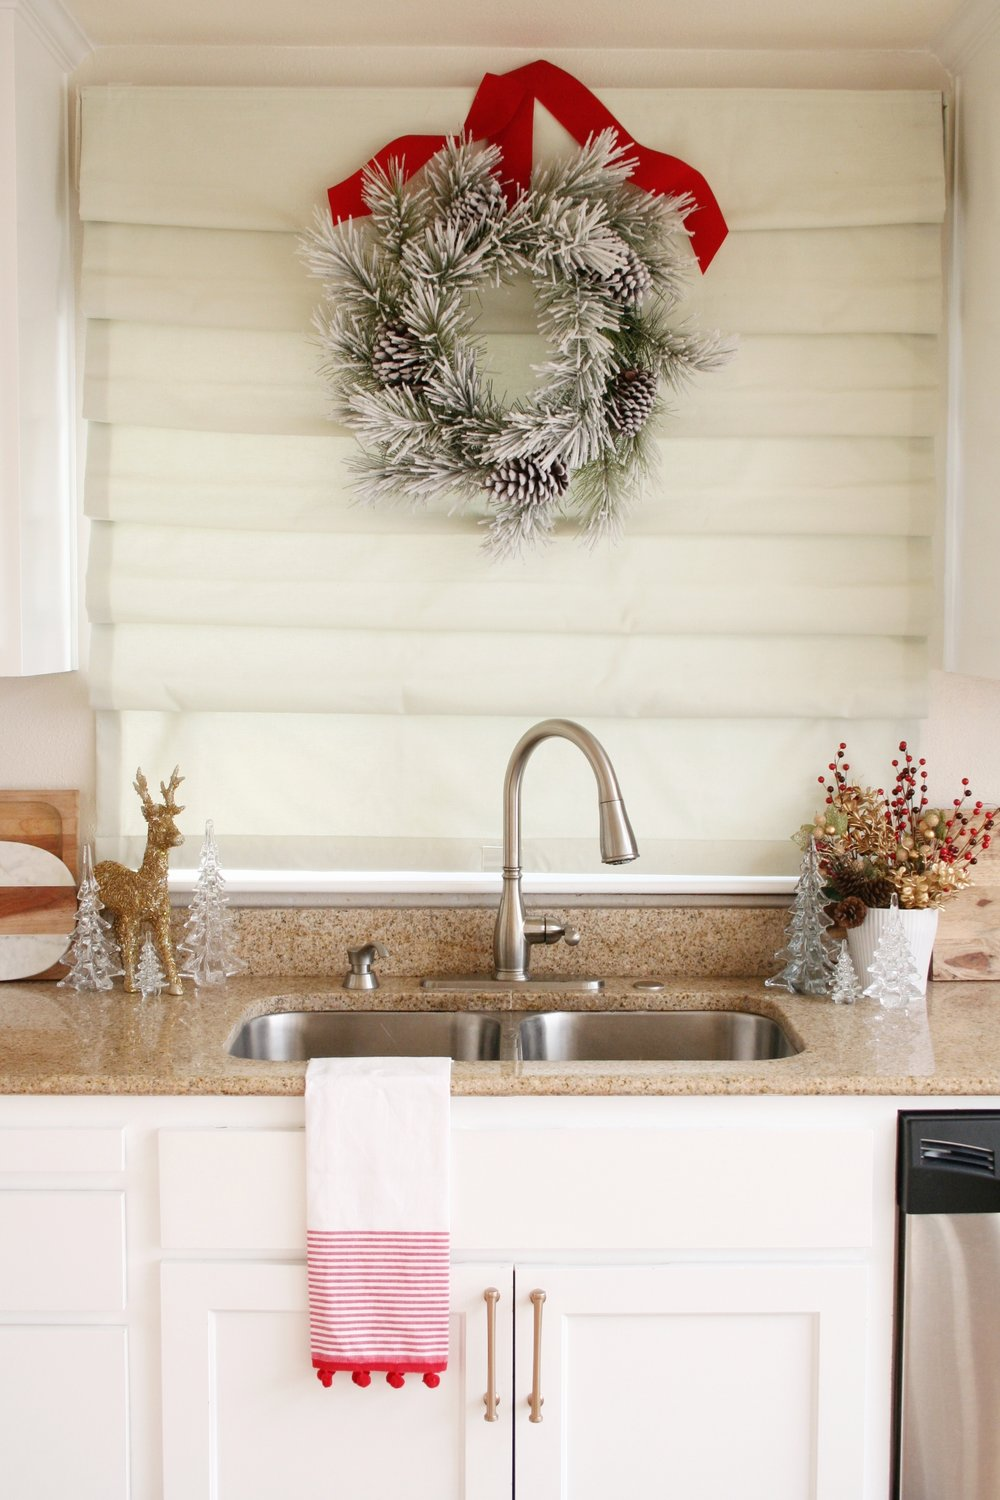 Christmas Wreath over Sink